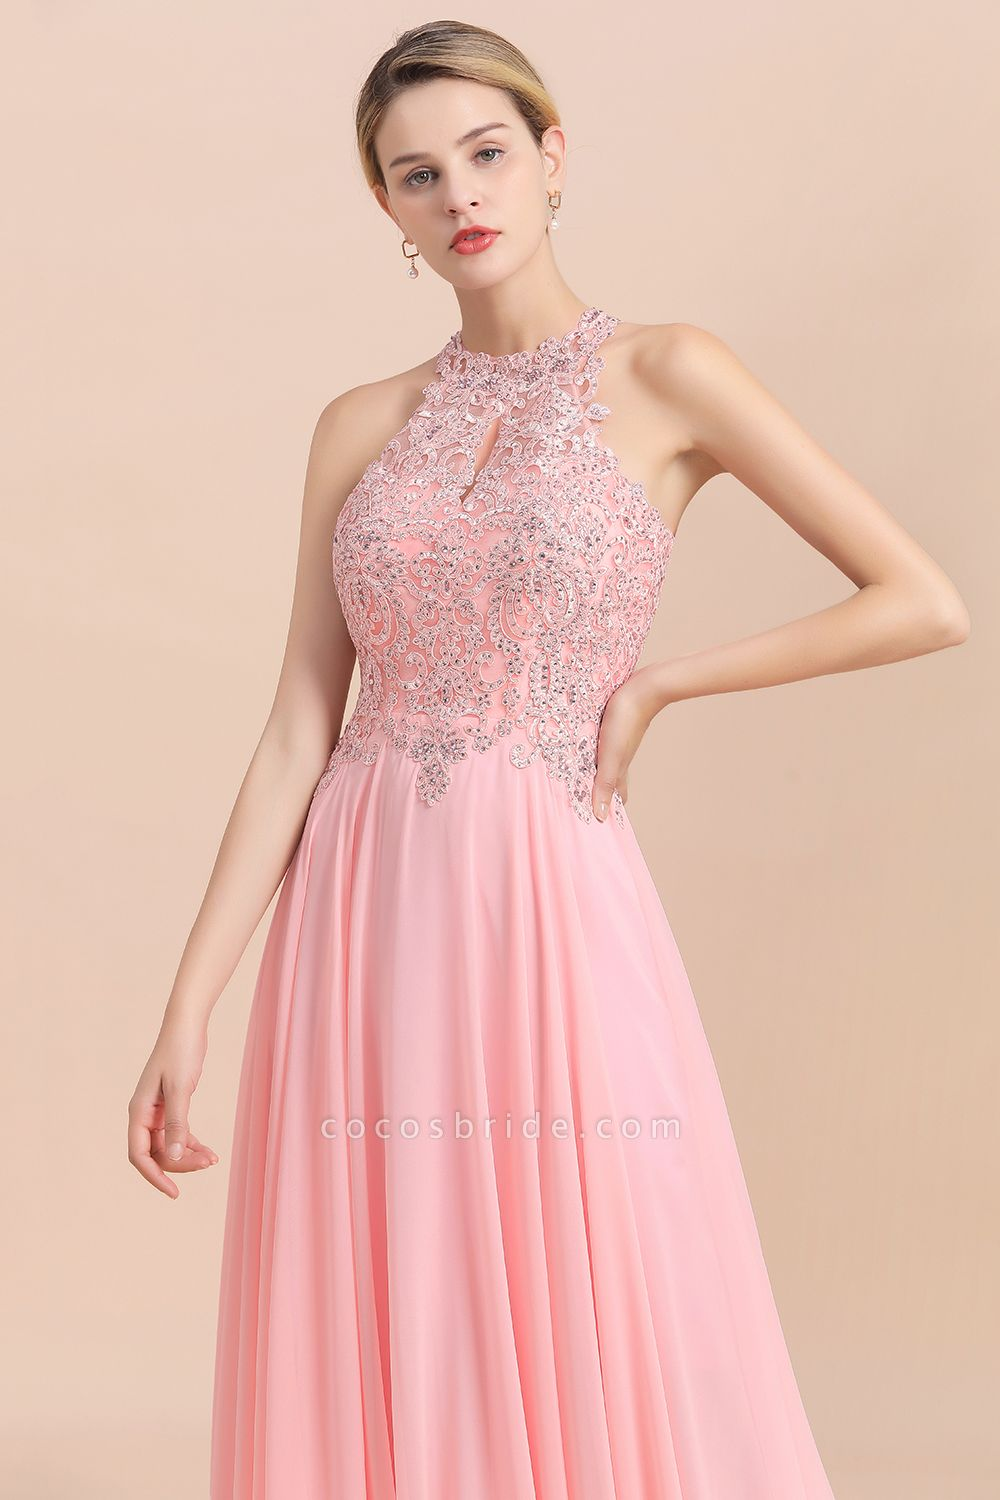 Pears Crystal A Line Halter Wedding Dresses Lace Wedding Gowns